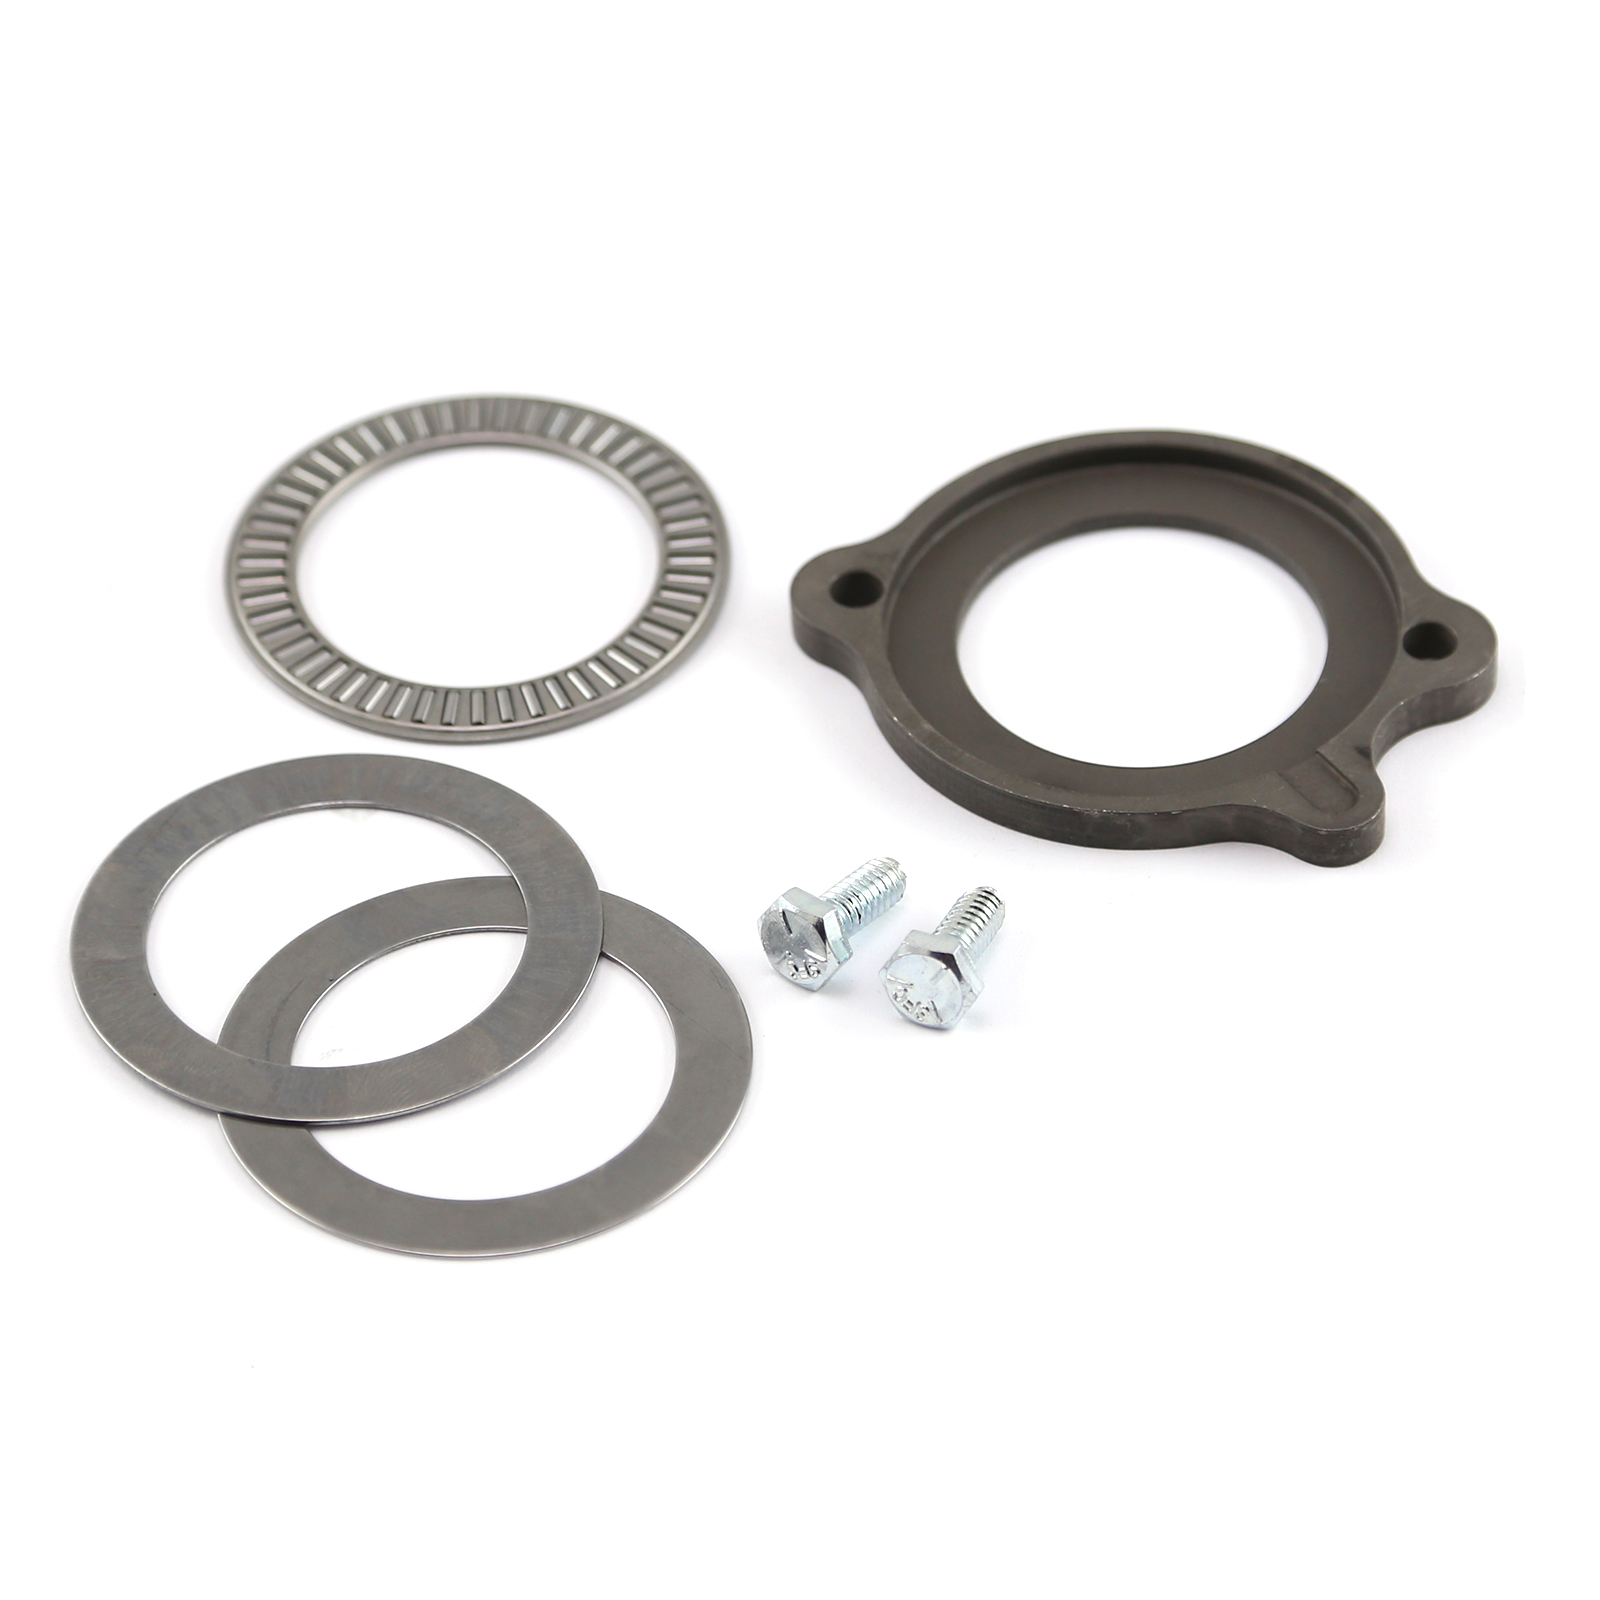 Ford SB 289 302 351 Windsor Camshaft Thrust Plate and Bearing Set w/ Hardware